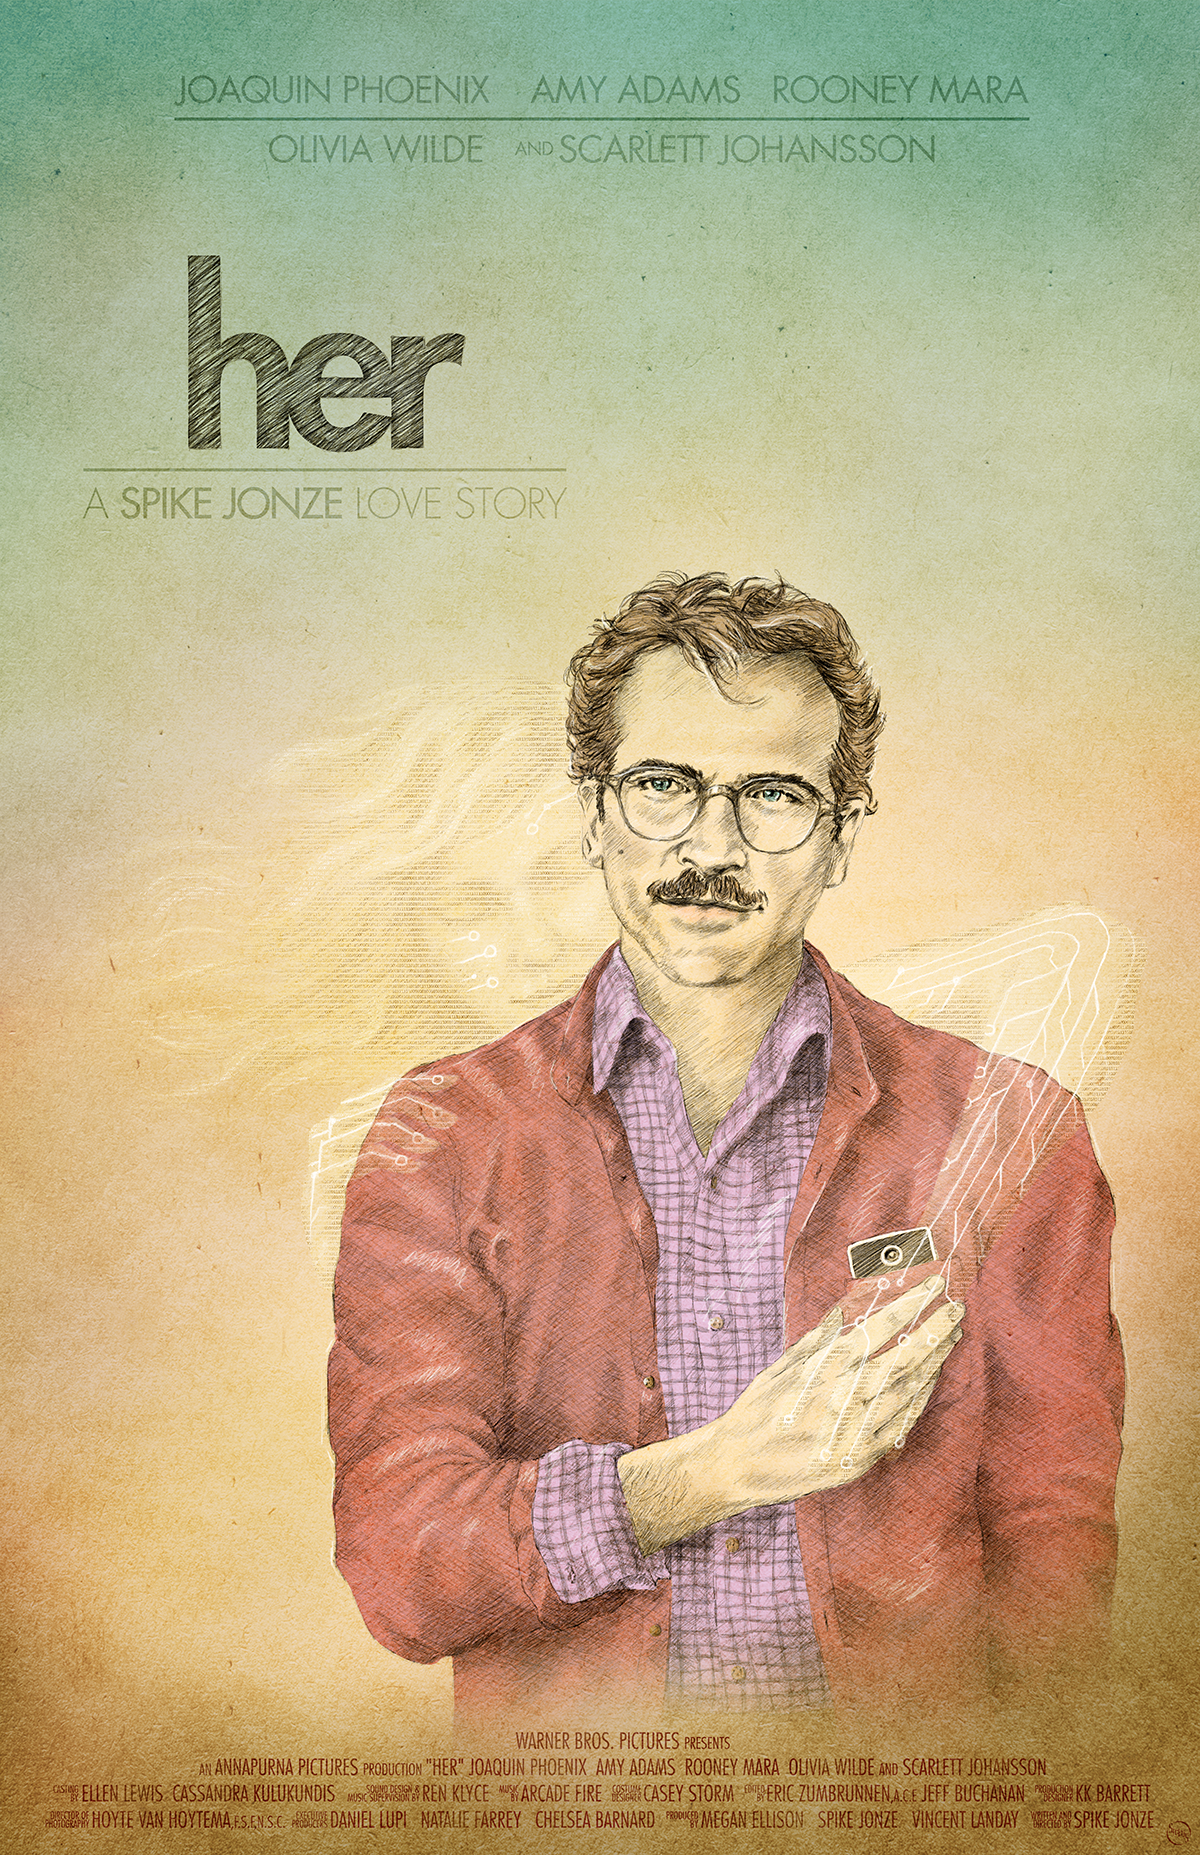 Rachael Sinclair - Her - A Spike Jonze Love Story